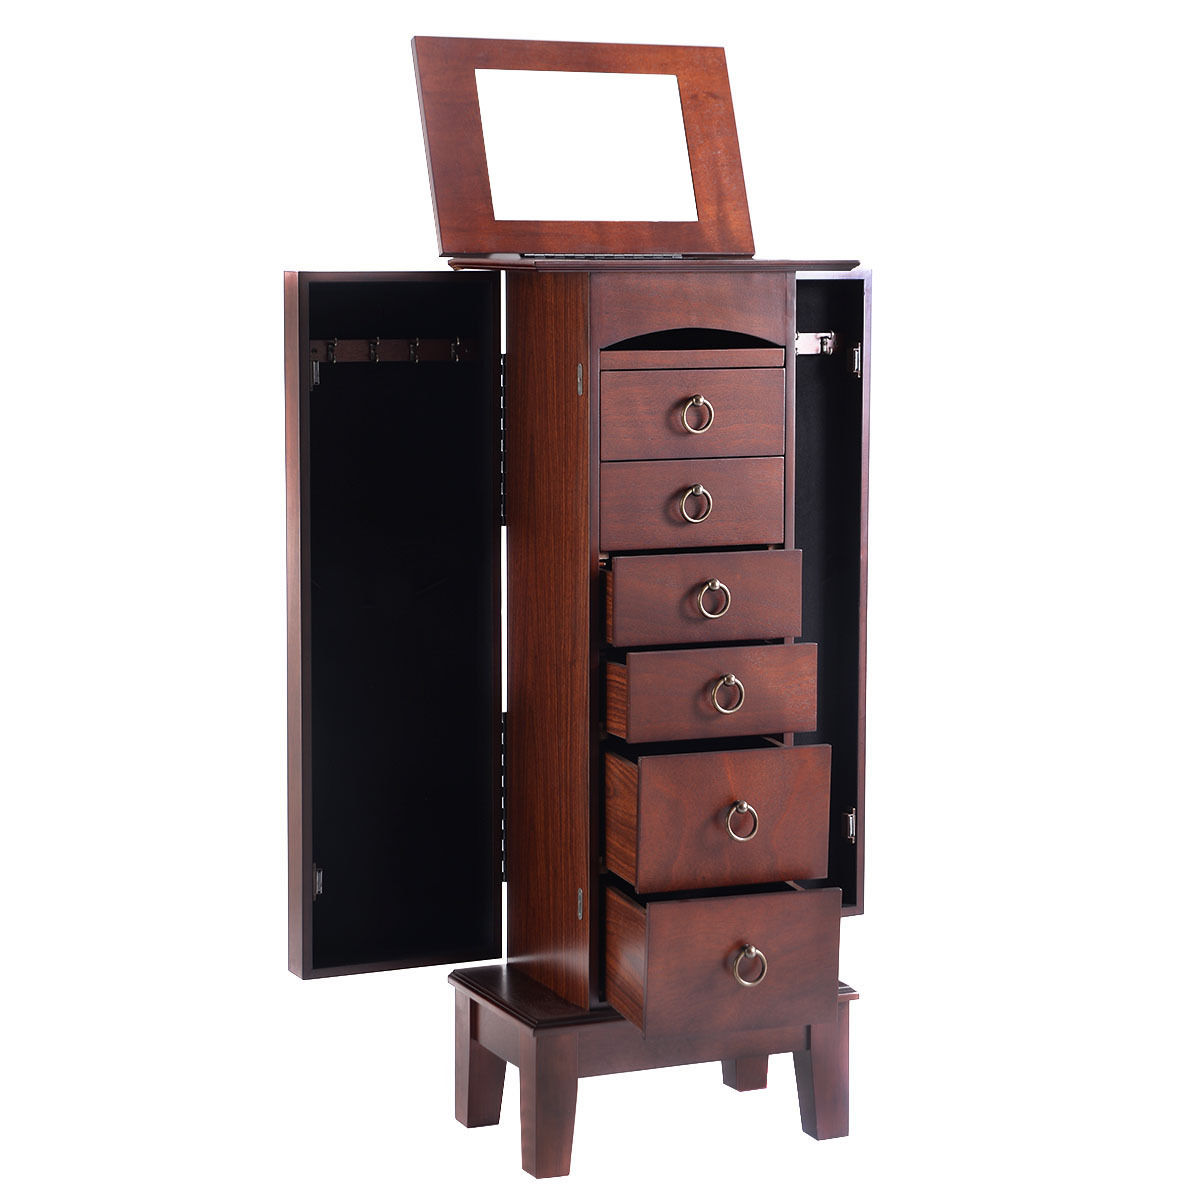 Wooden Jewelry Cabinet Storage Organizer with 6 Drawers